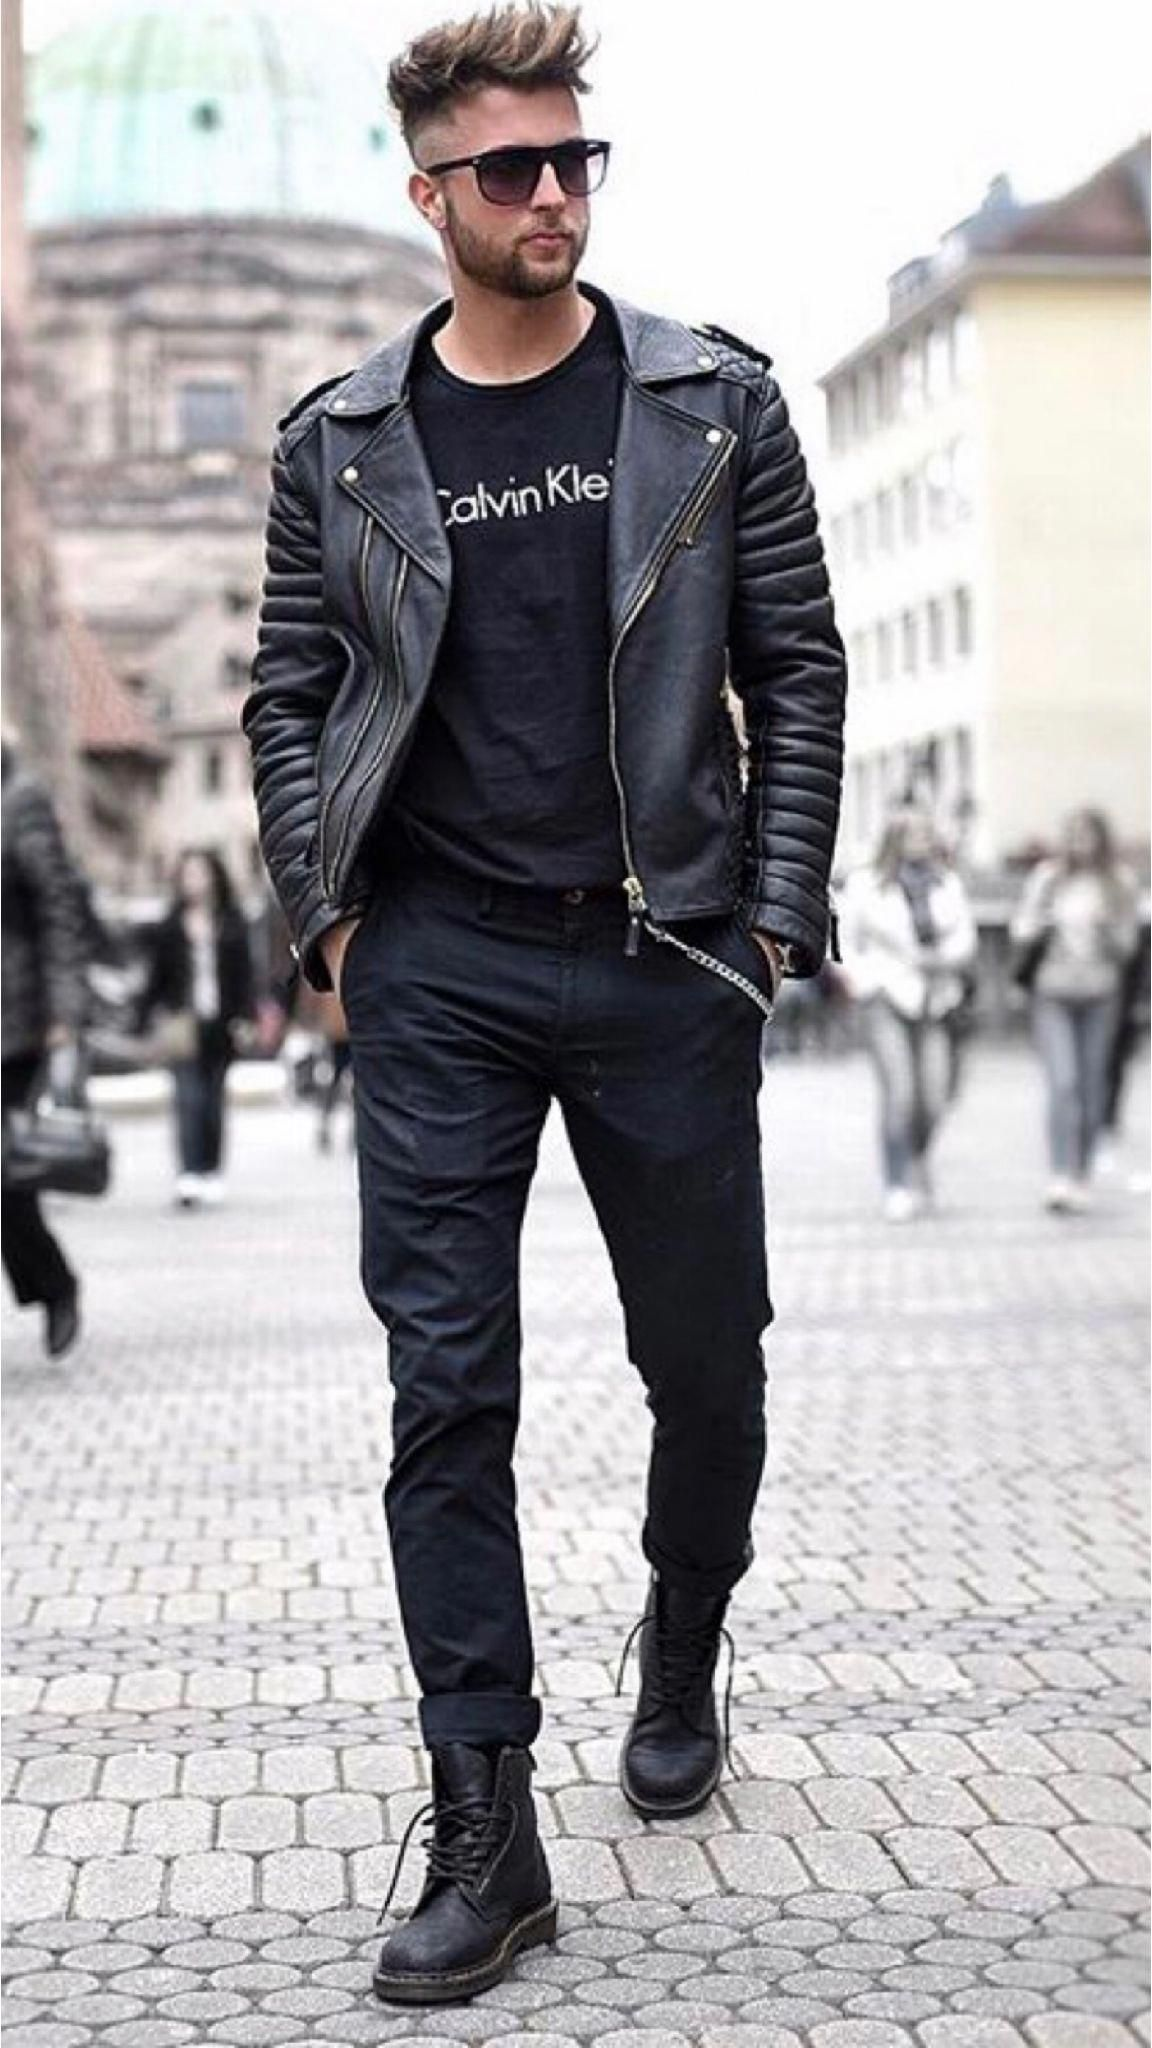 313433960ff4c outfits you need to copy from this influencer mensoutfits also best mens  fashion images in rh